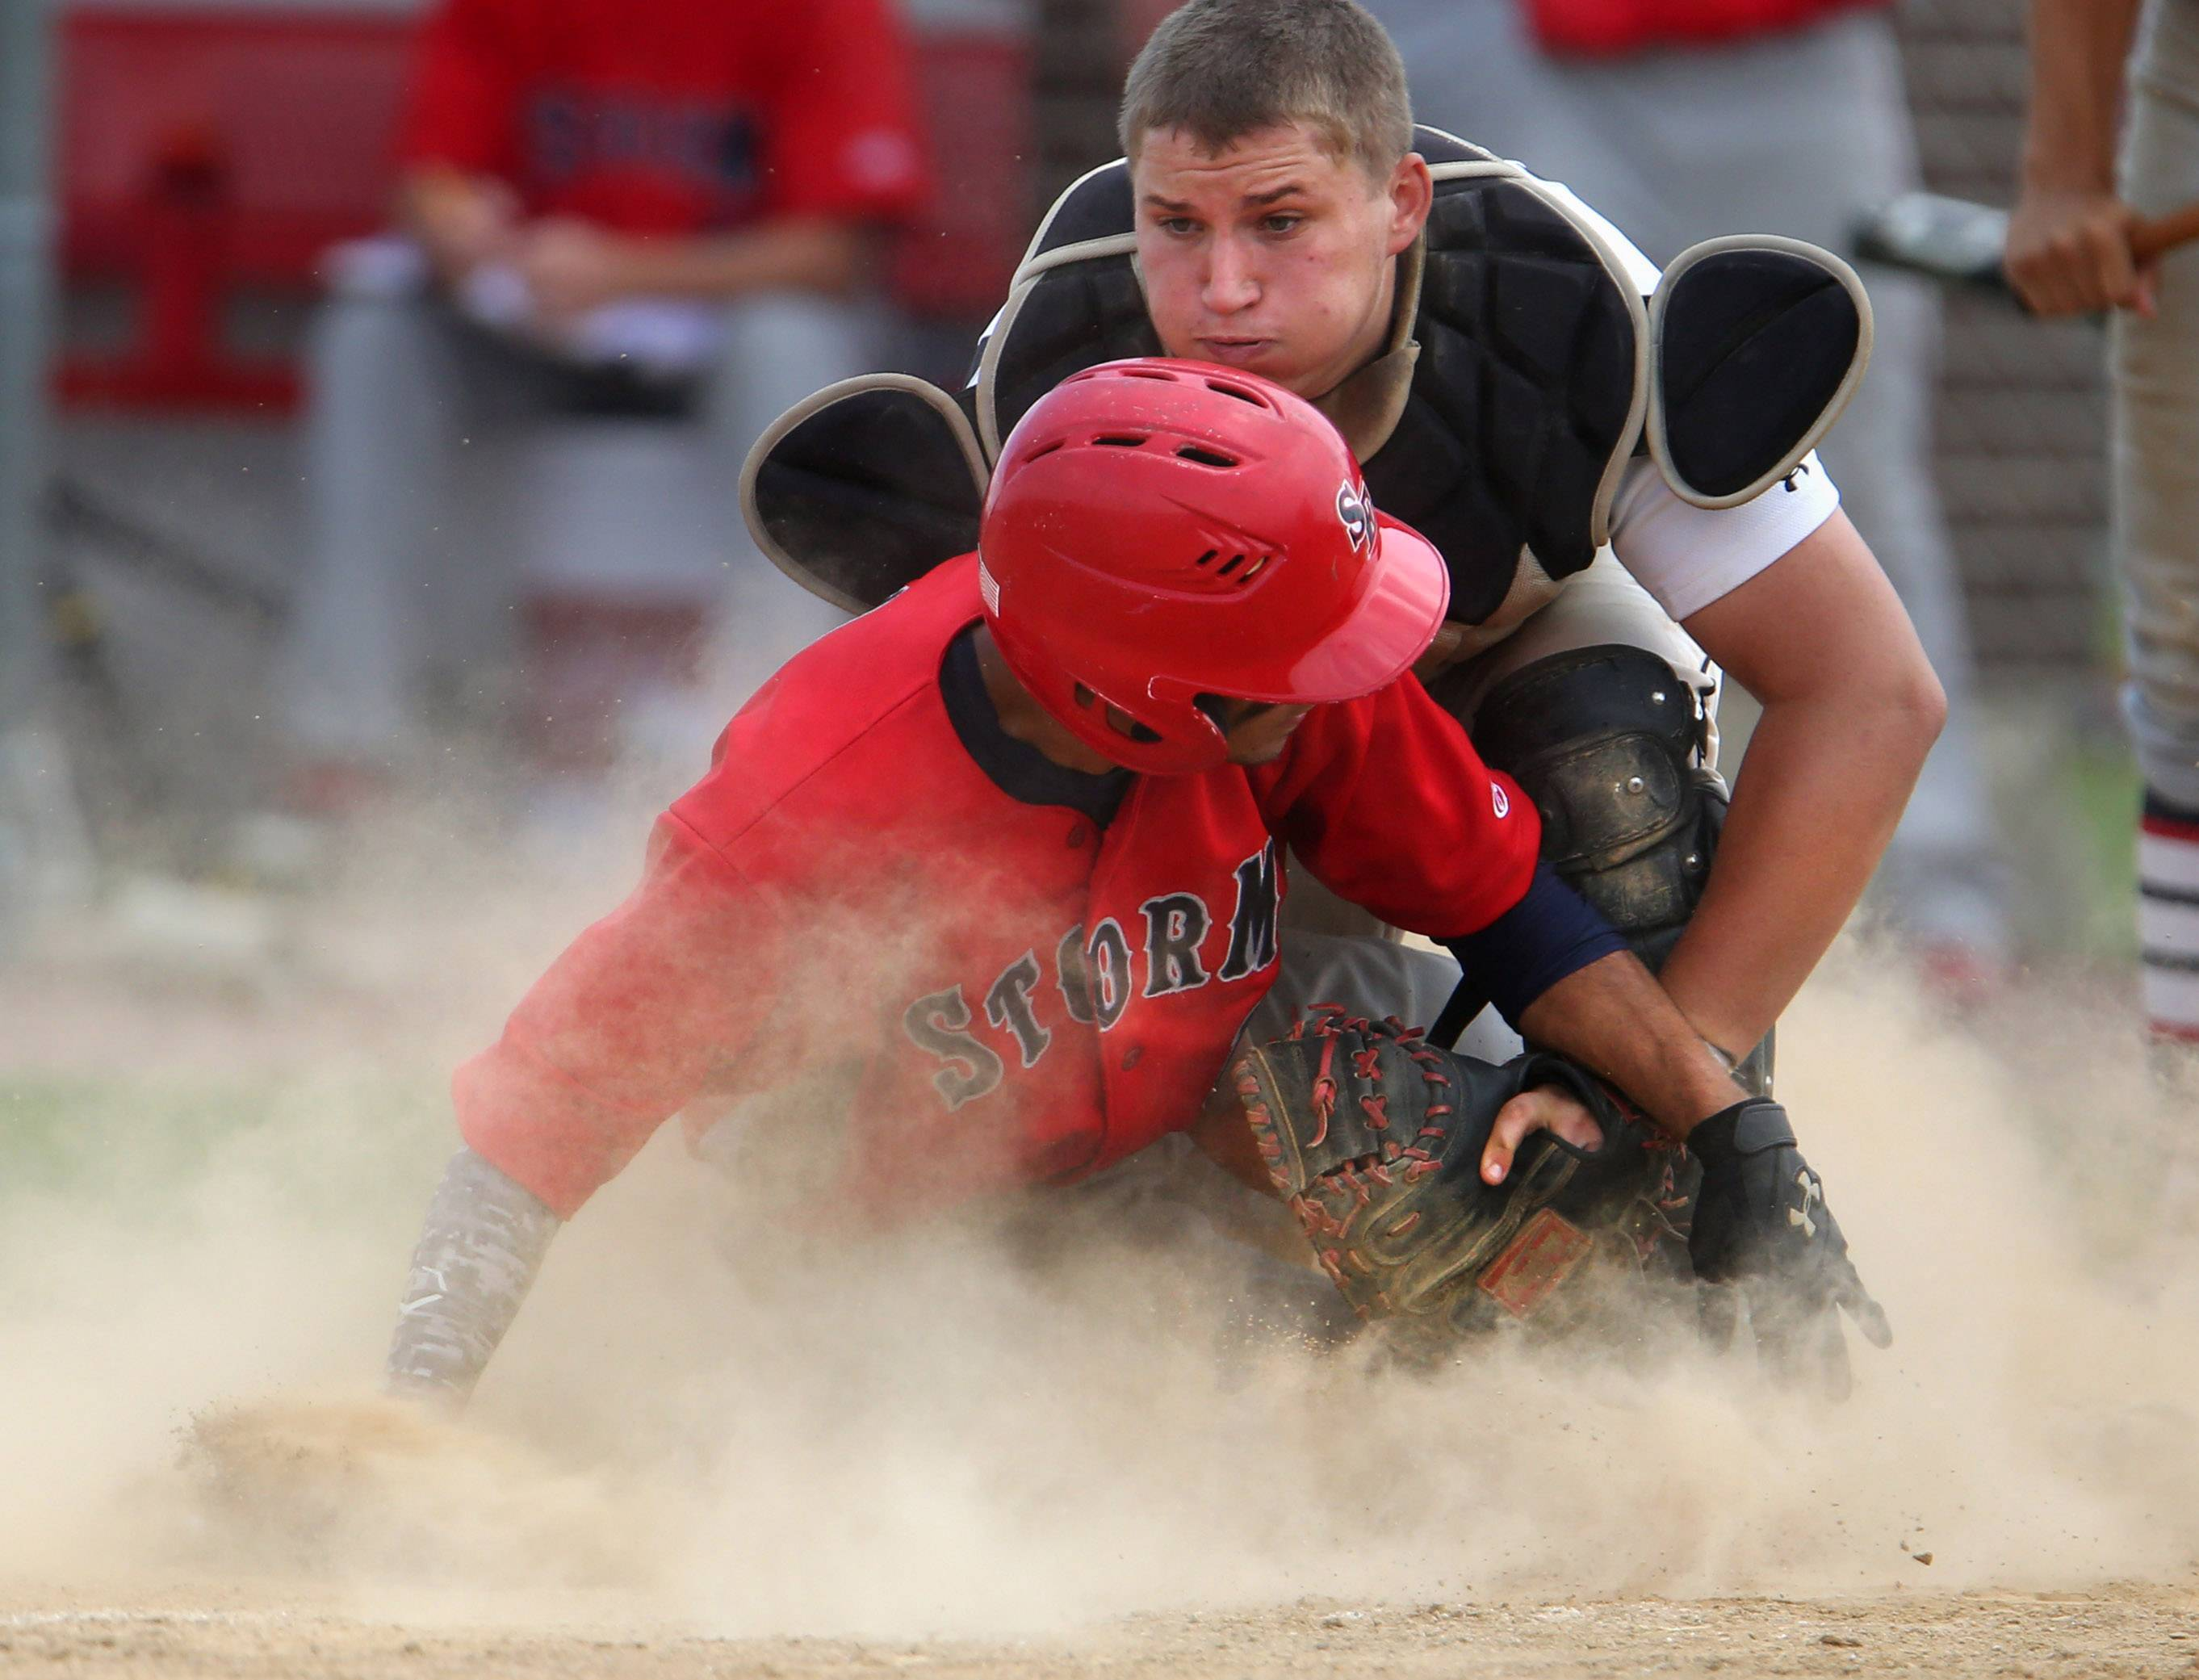 Batavia catcher Dino Simoncelli tags out South Elgin's Dane Toppel at home plate during South Elgin's 8-3 victory in the Schaumburg sectional championship game Saturday.